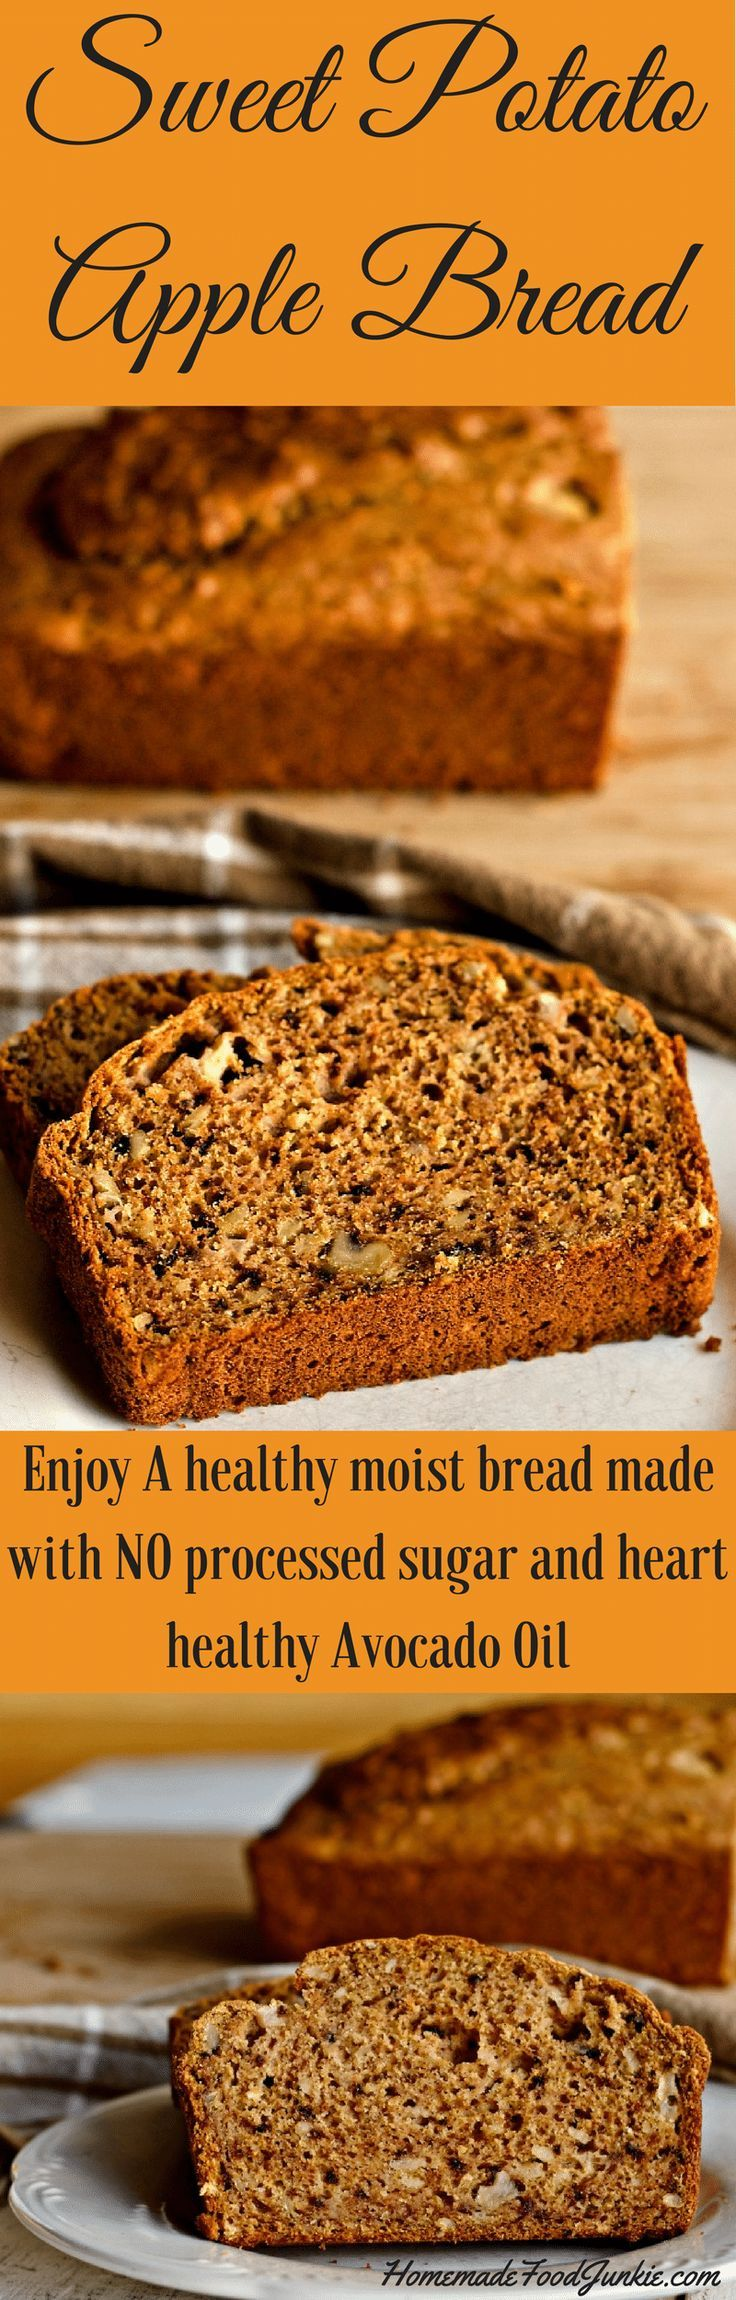 Sweet Potato Apple Bread is full of delicious, healthy, natural ingredients including avocado oil and walnut. Make your family a heart healthy, dairy free comfort food that will nourish their bodies and please their taste buds. This moist,high fiber rich